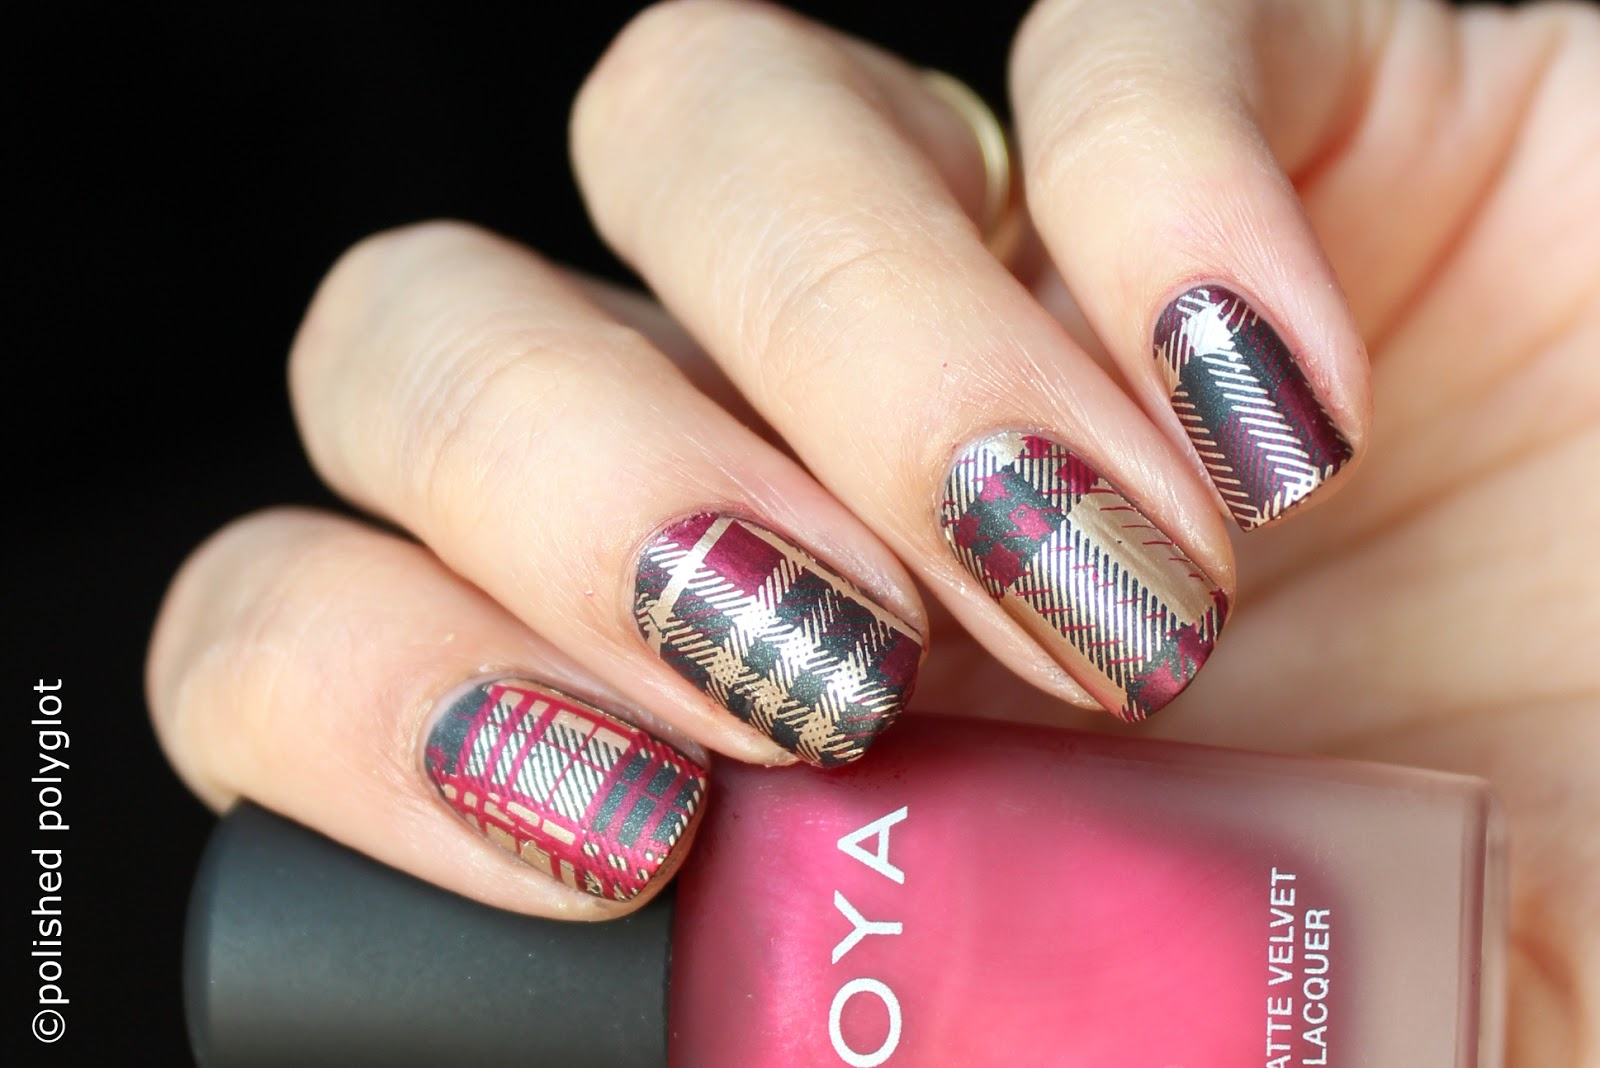 Nail art │Tartan pattern nail design [26GNAI] / Polished Polyglot